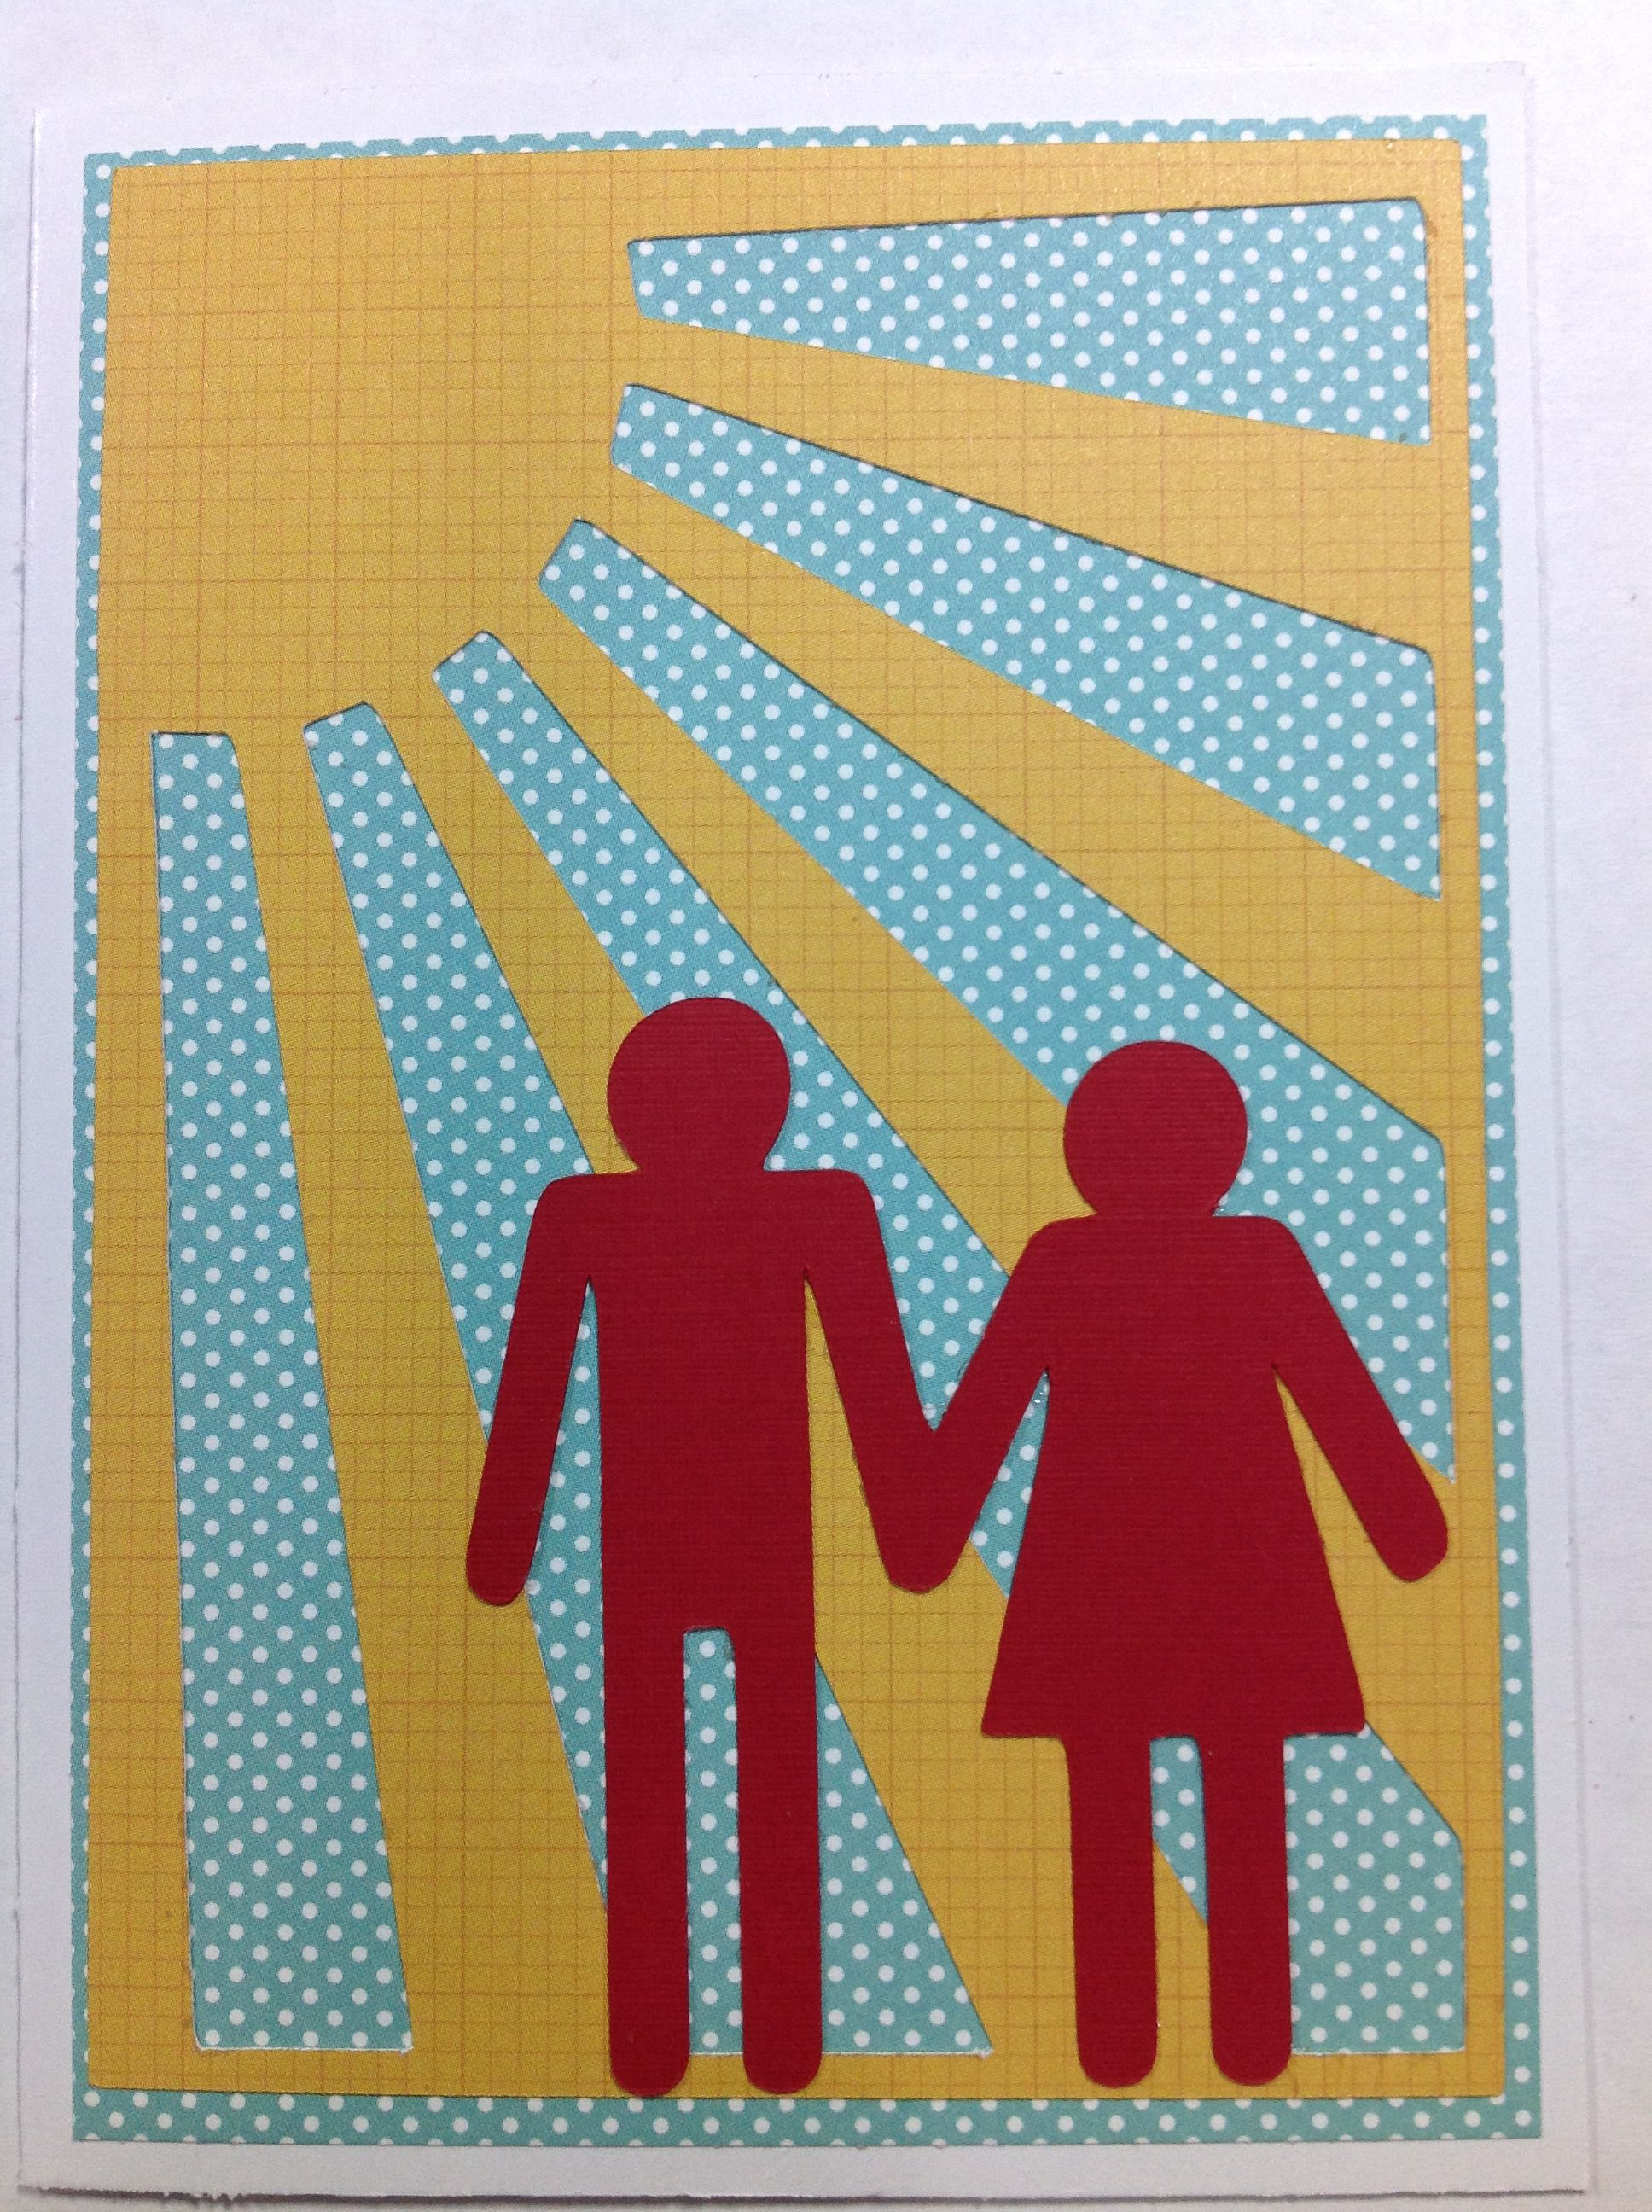 Day 29: Card-A-Day with Mandy Leahy | Sentiment Free Card  I used the real dial size to cut the sun burst and the couple. Thanks for the help! This made me feel like a card you could give to a couple symbolizing their bright future.